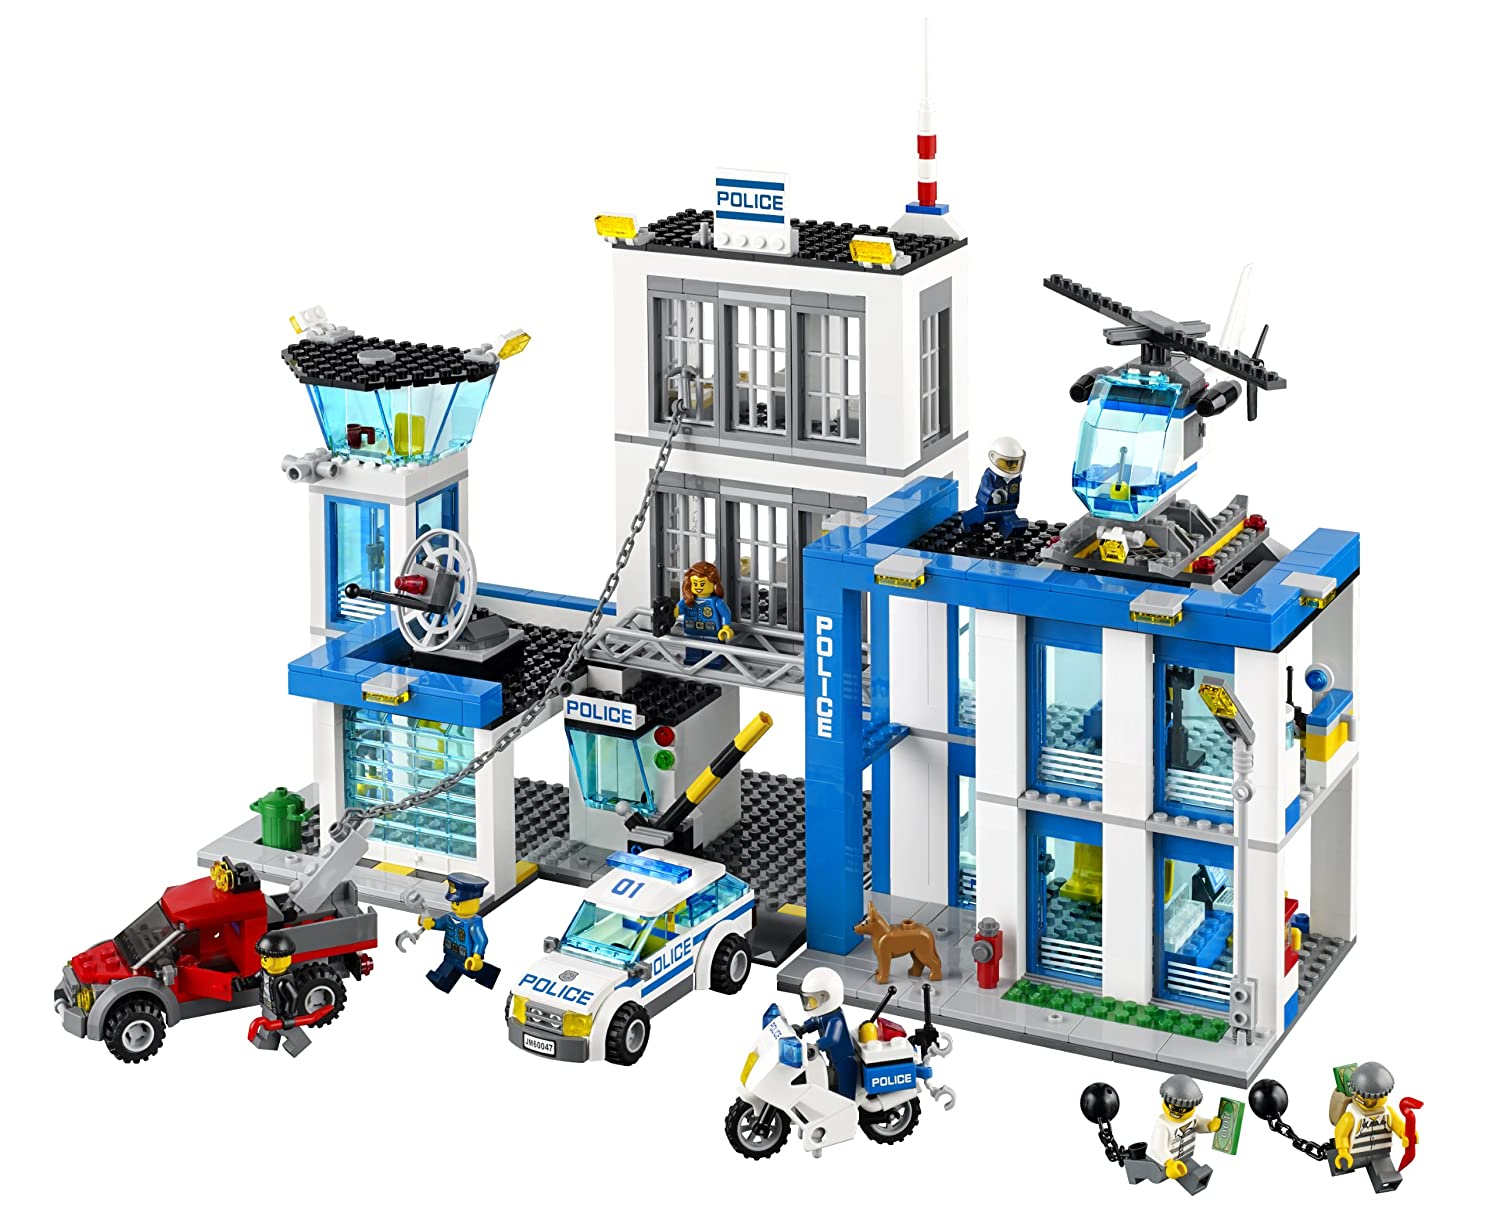 The LEGO City Police Station Set for Boys - LEGO City Police 60047 Police Station